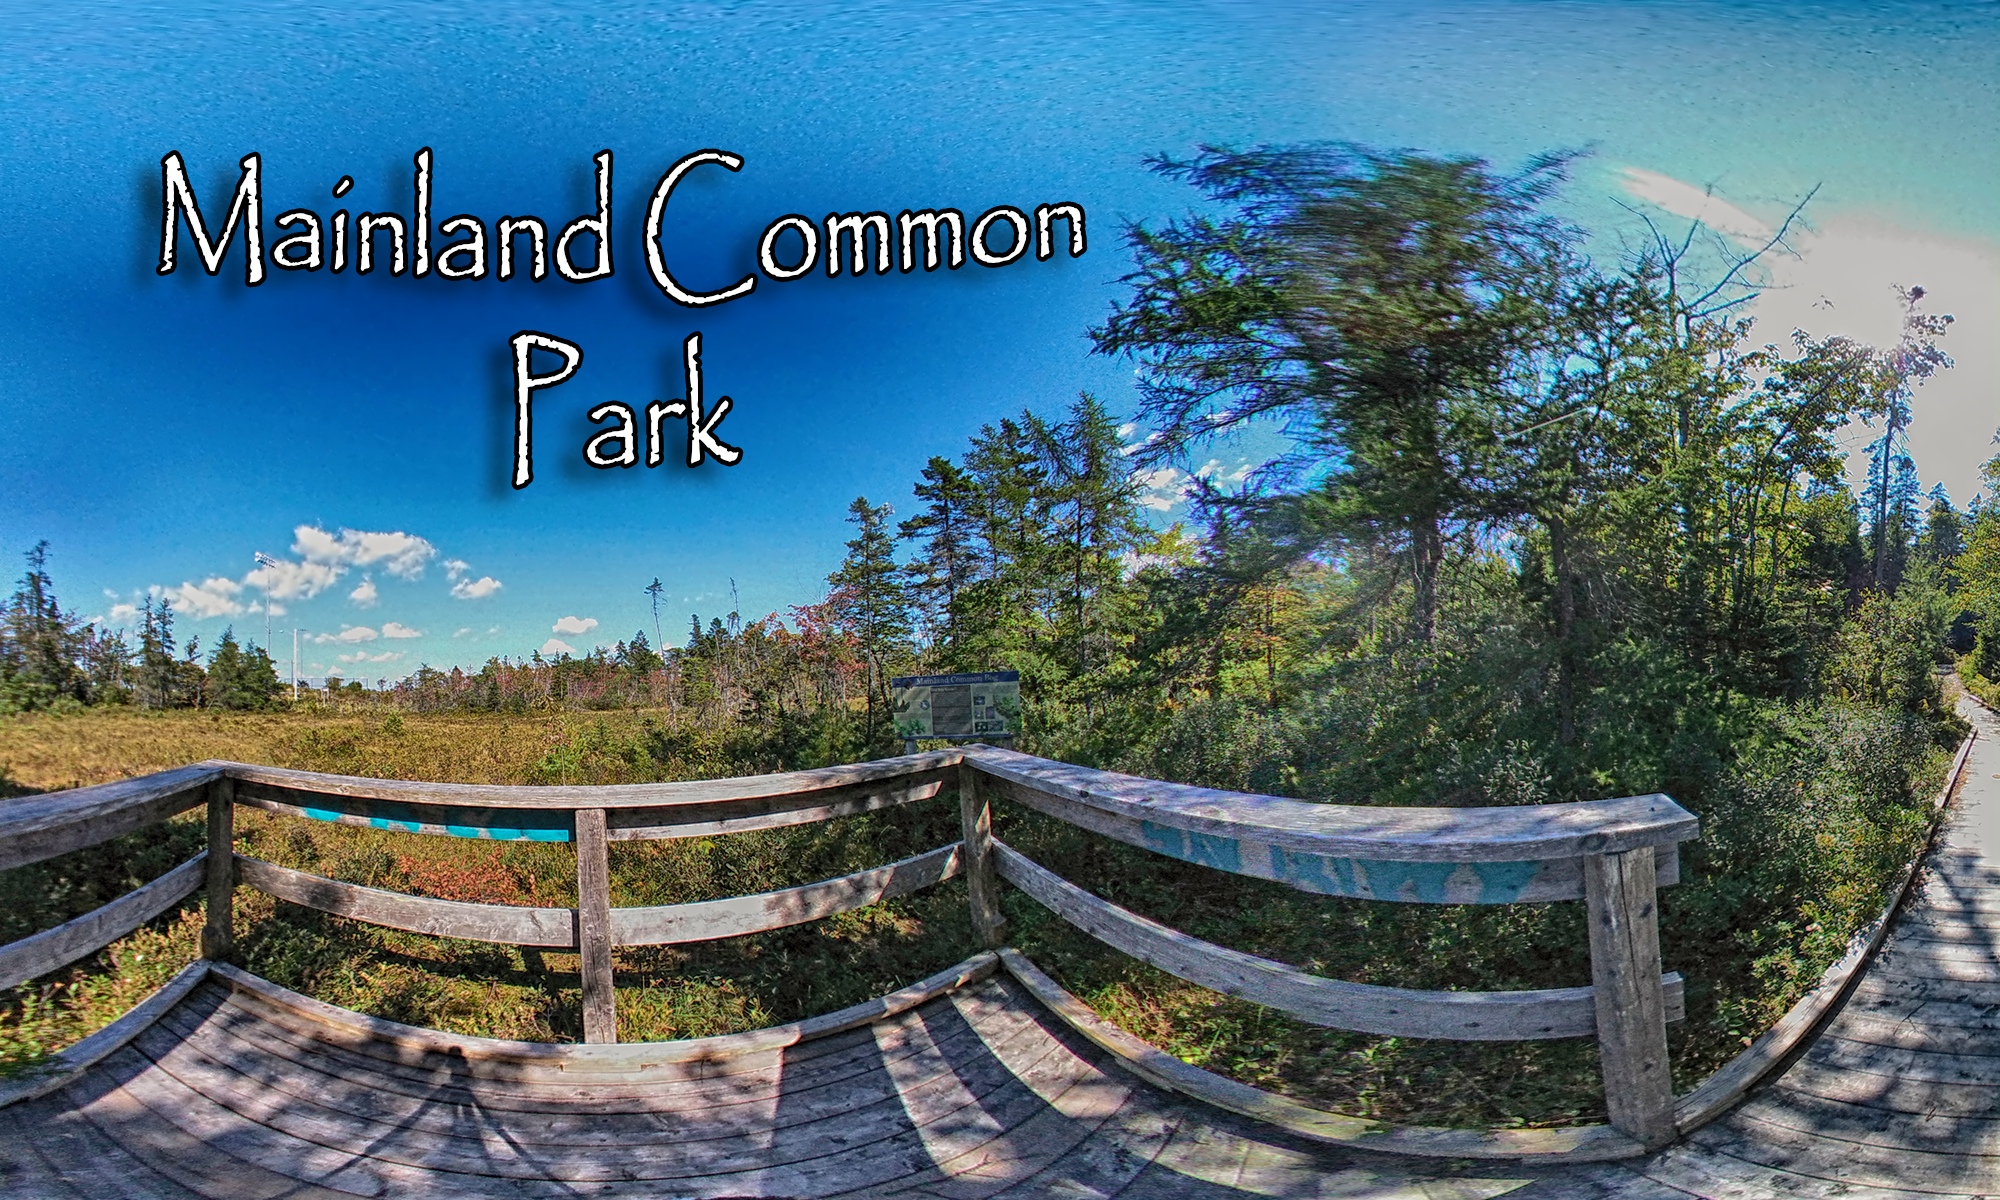 Mainland Common Park